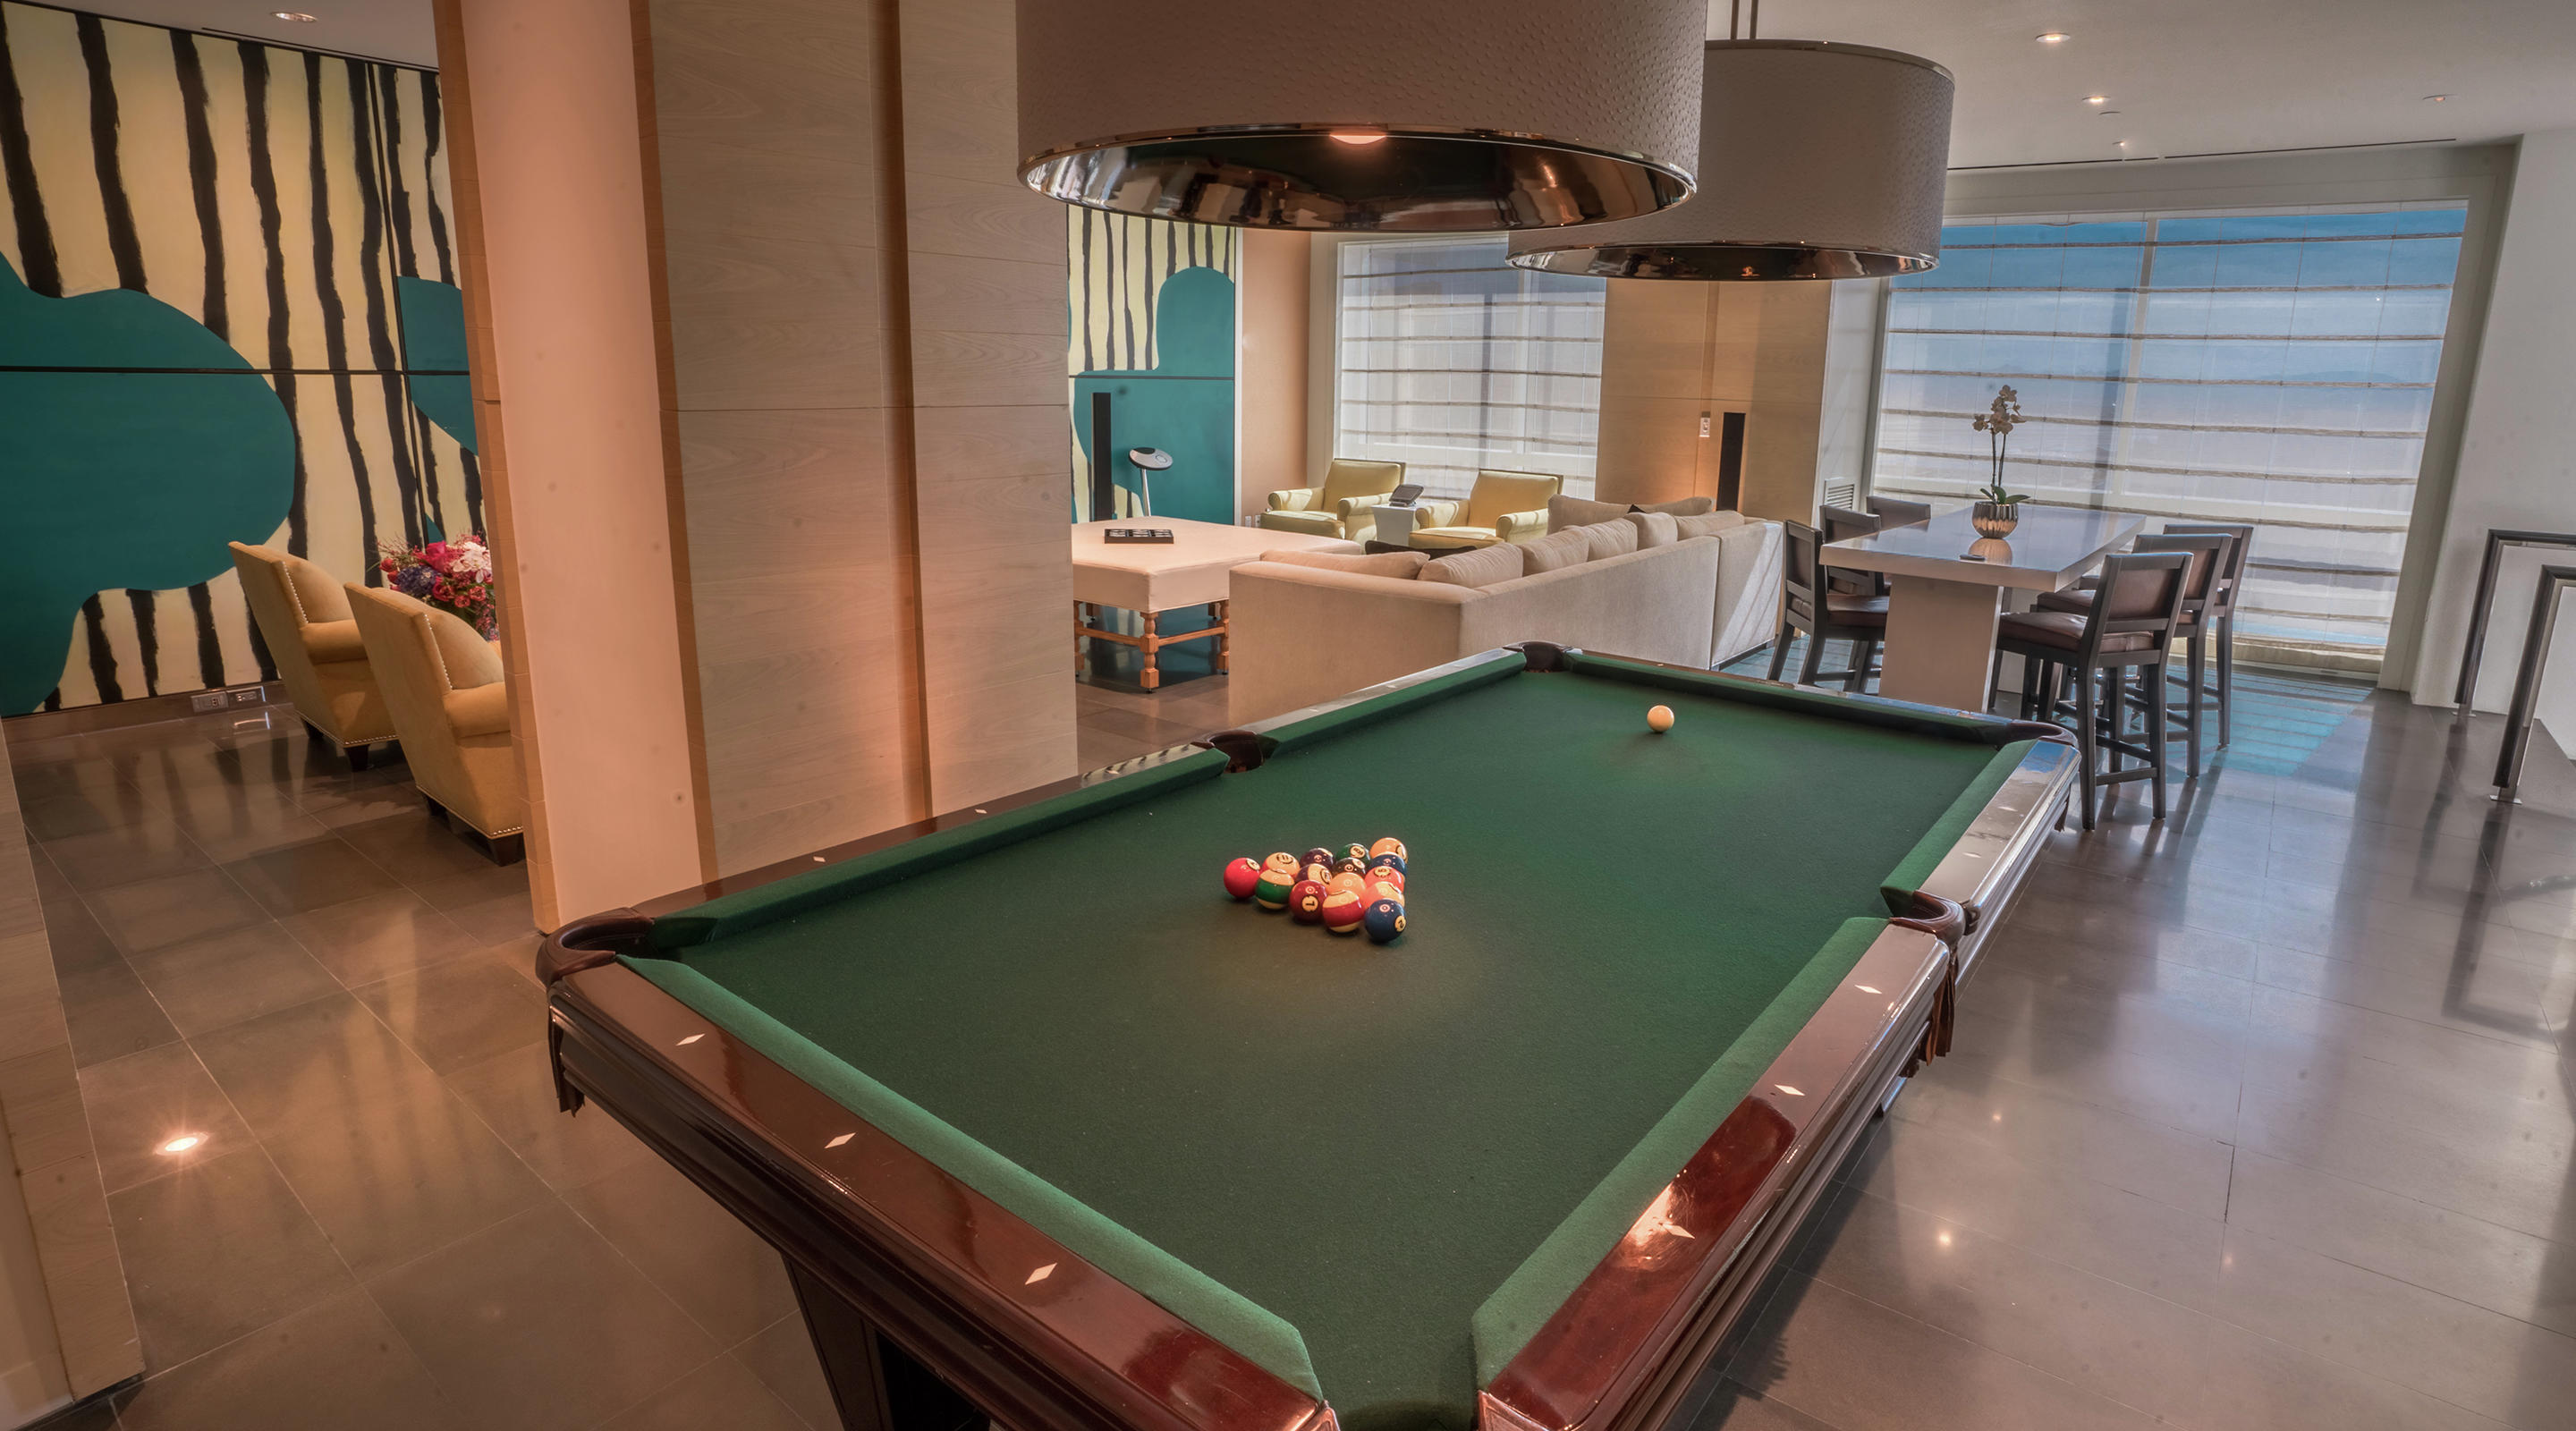 Pool table in the SKYLOFTS Two Bedroom Plunge Pool Loft at SKYLOFTS.